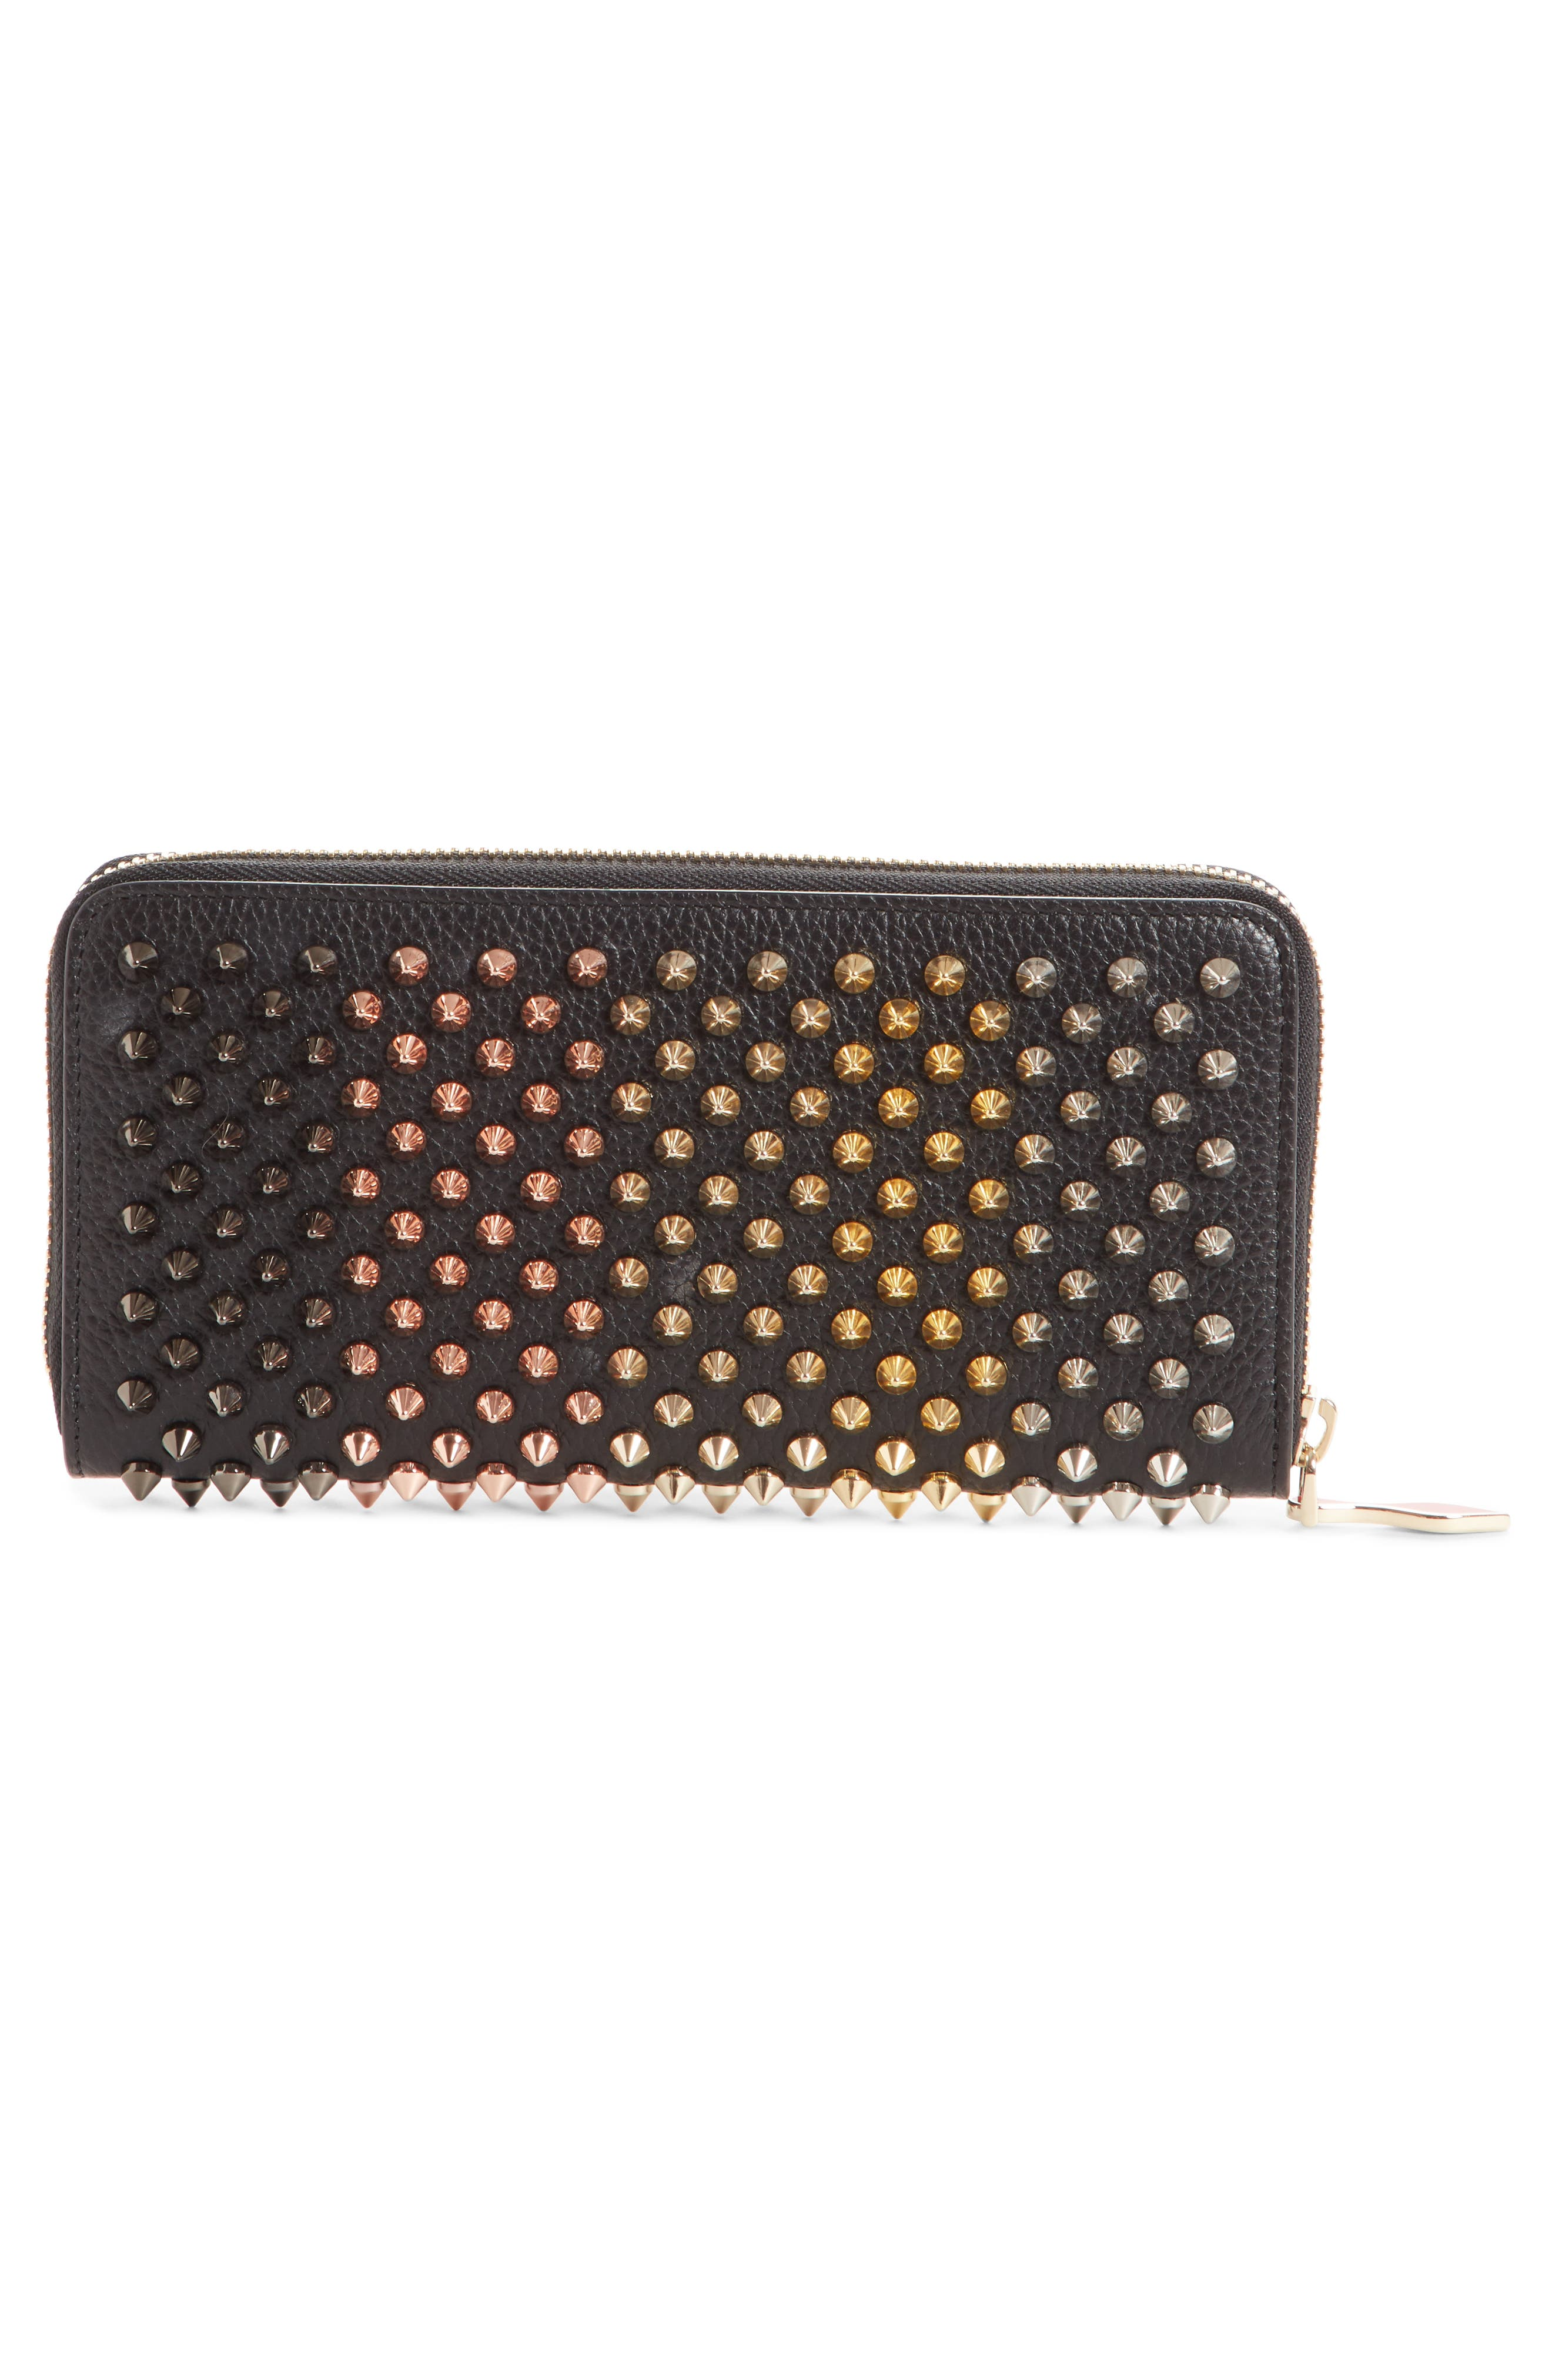 Panettone Spiked Leather Wallet,                             Alternate thumbnail 2, color,                             BLACK/ MULTIMETAL